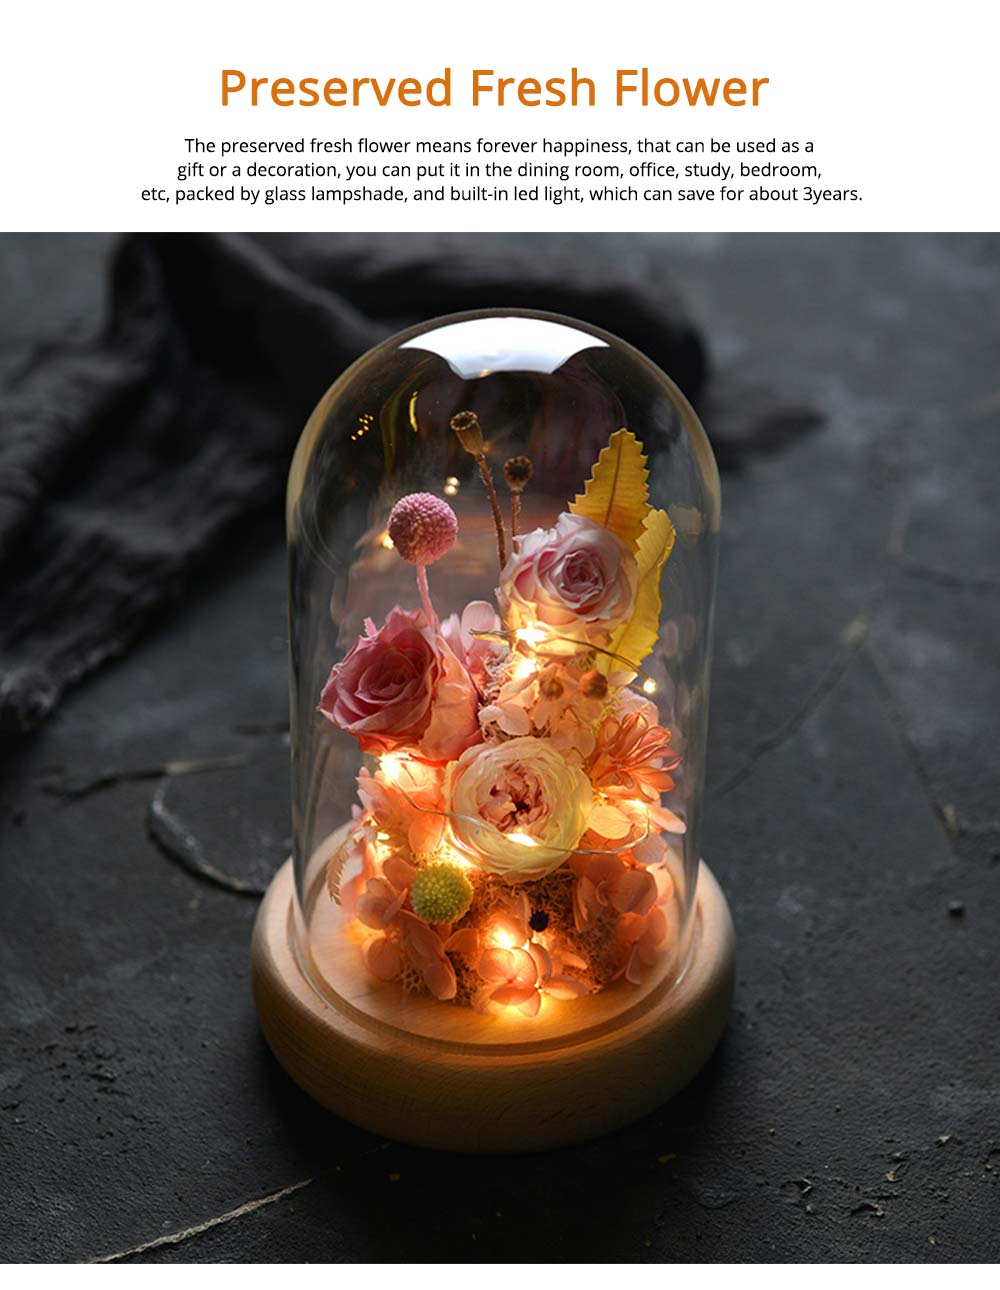 Preserved Fresh Flower Gift with Glass Pot and Wooden Base, LED Lights Romantic Rose for Girlfriend 7